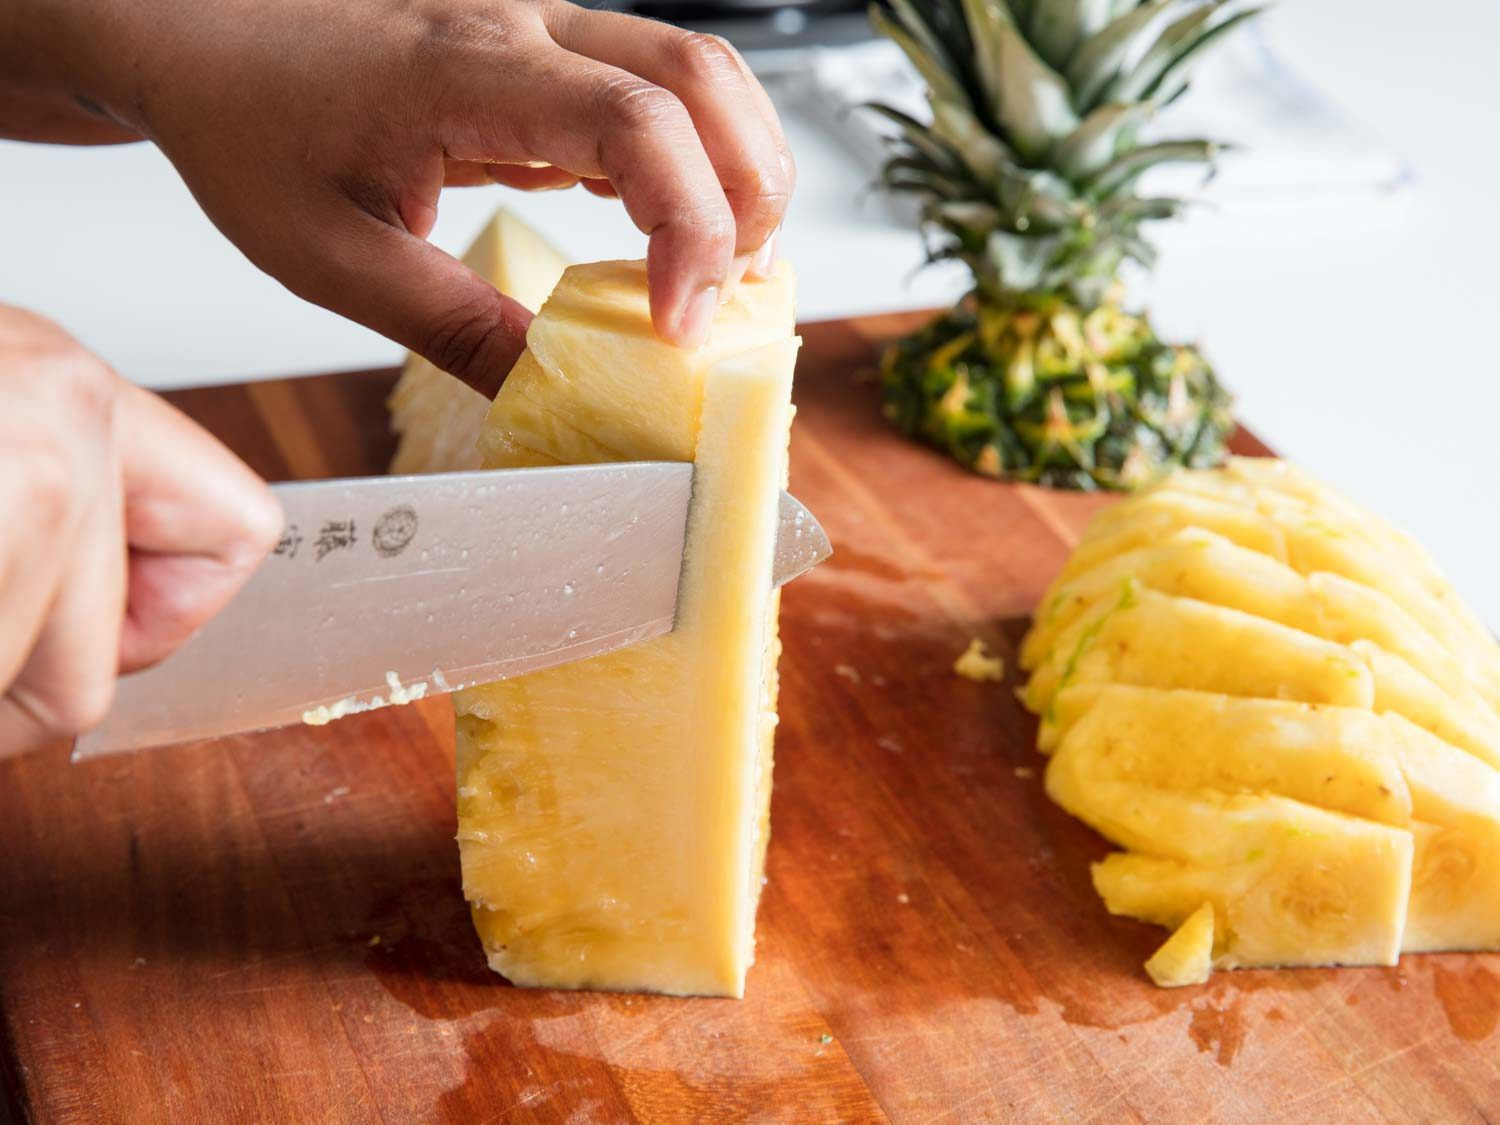 A knife trimming out the core of a pineapple.